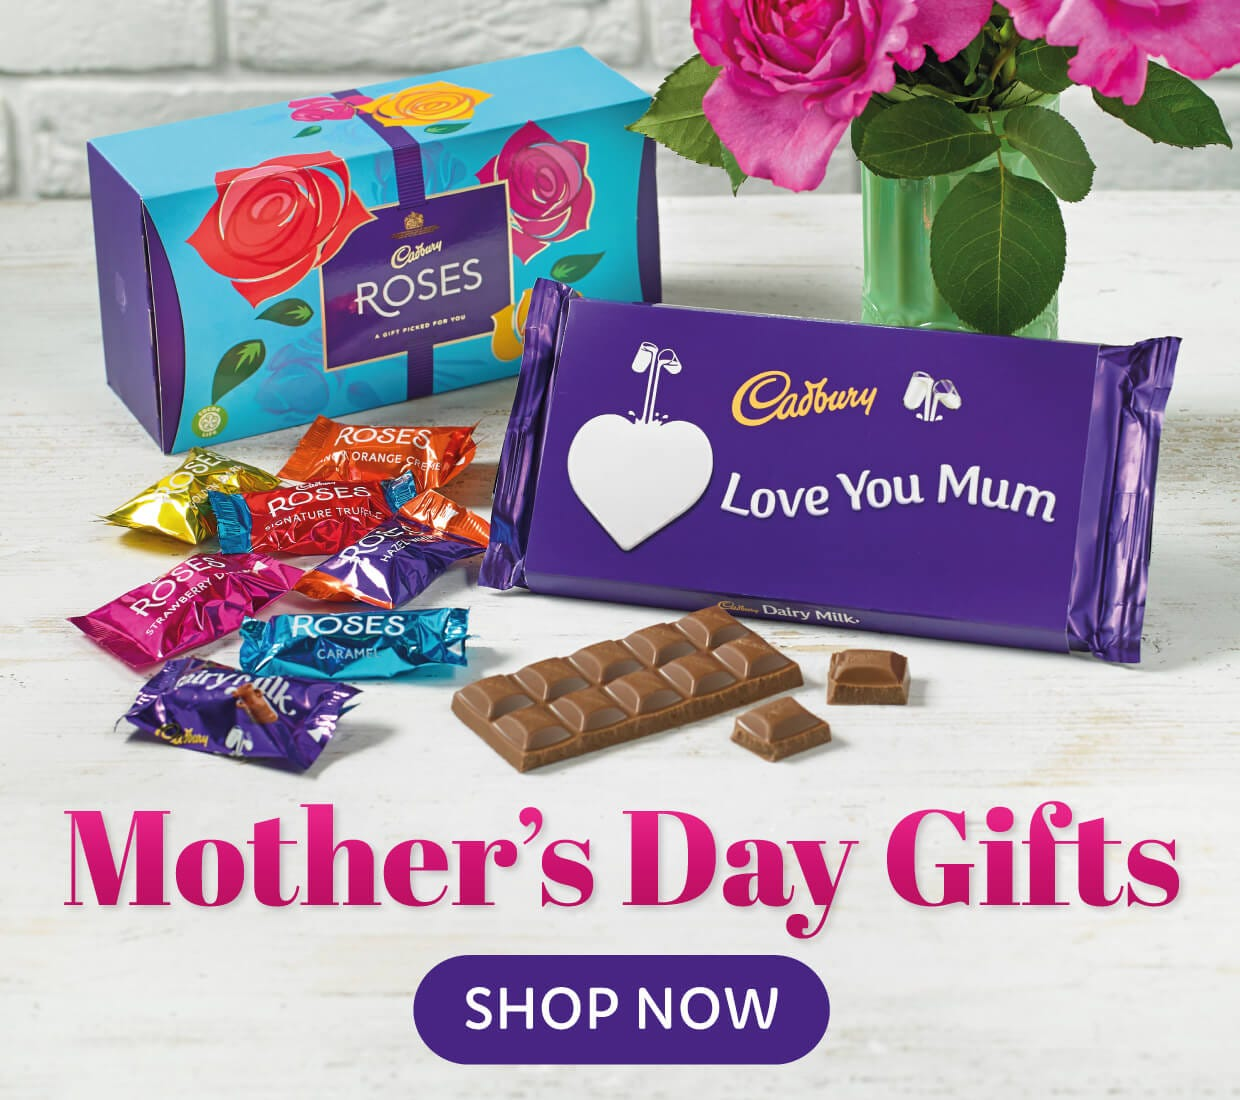 Cabury Mother's Day Chocolate Gifts and hampers